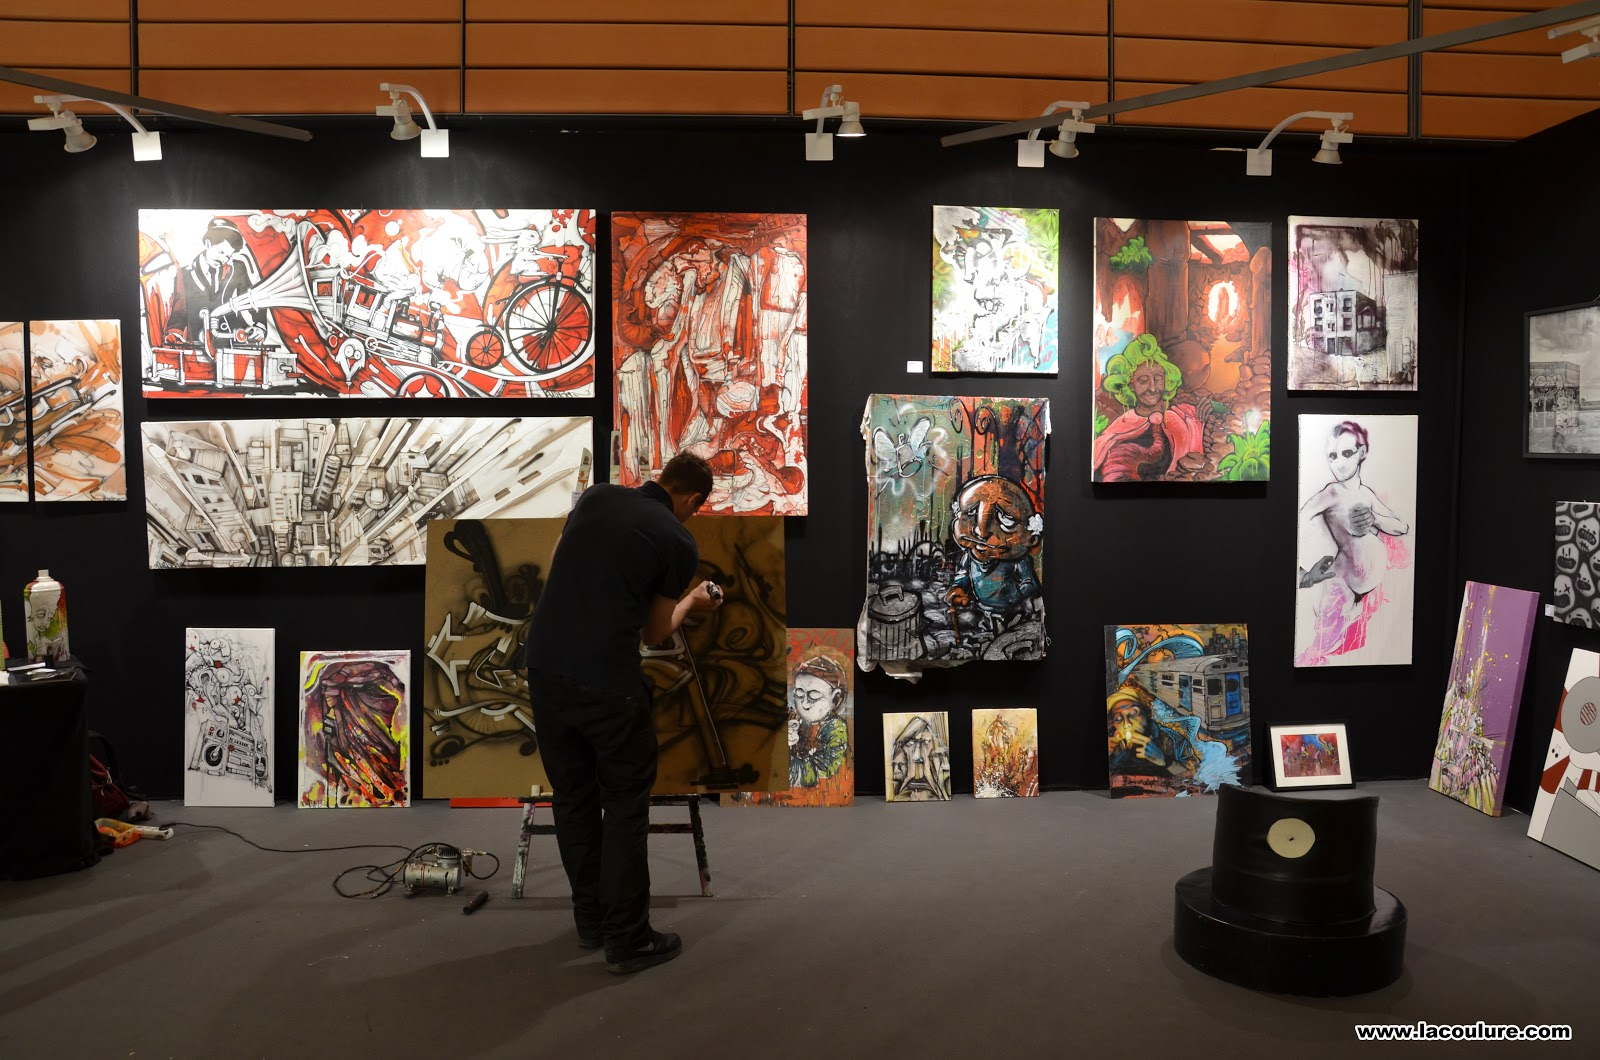 Collectif la coulure graffiti lyon salon d 39 art - Salon art contemporain ...